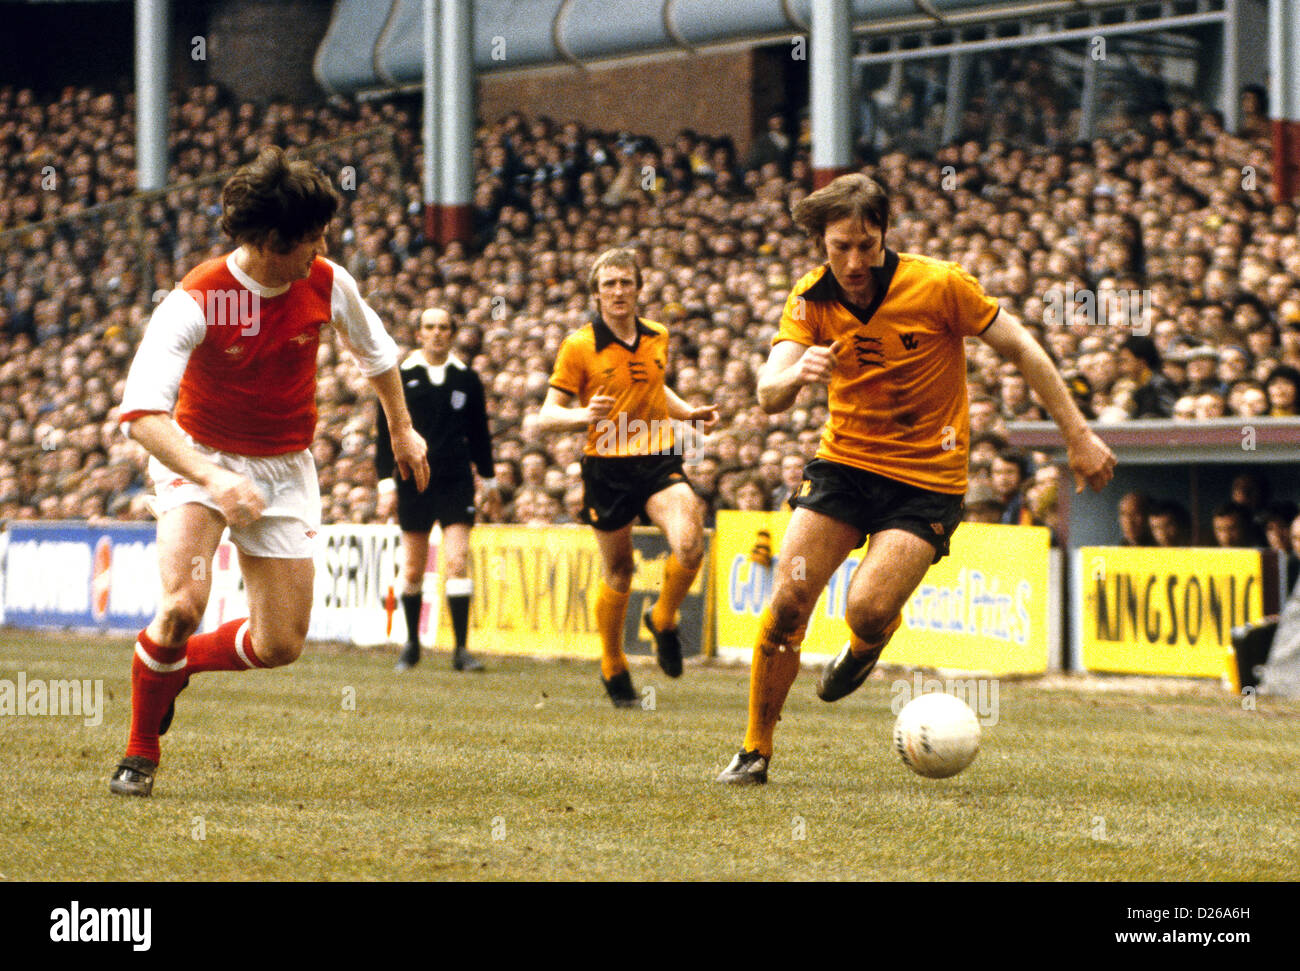 Wolverhampton Wanderers footballer Steve Daley taking on Pat Rice of Arsenal in FA CUP semi final 1979